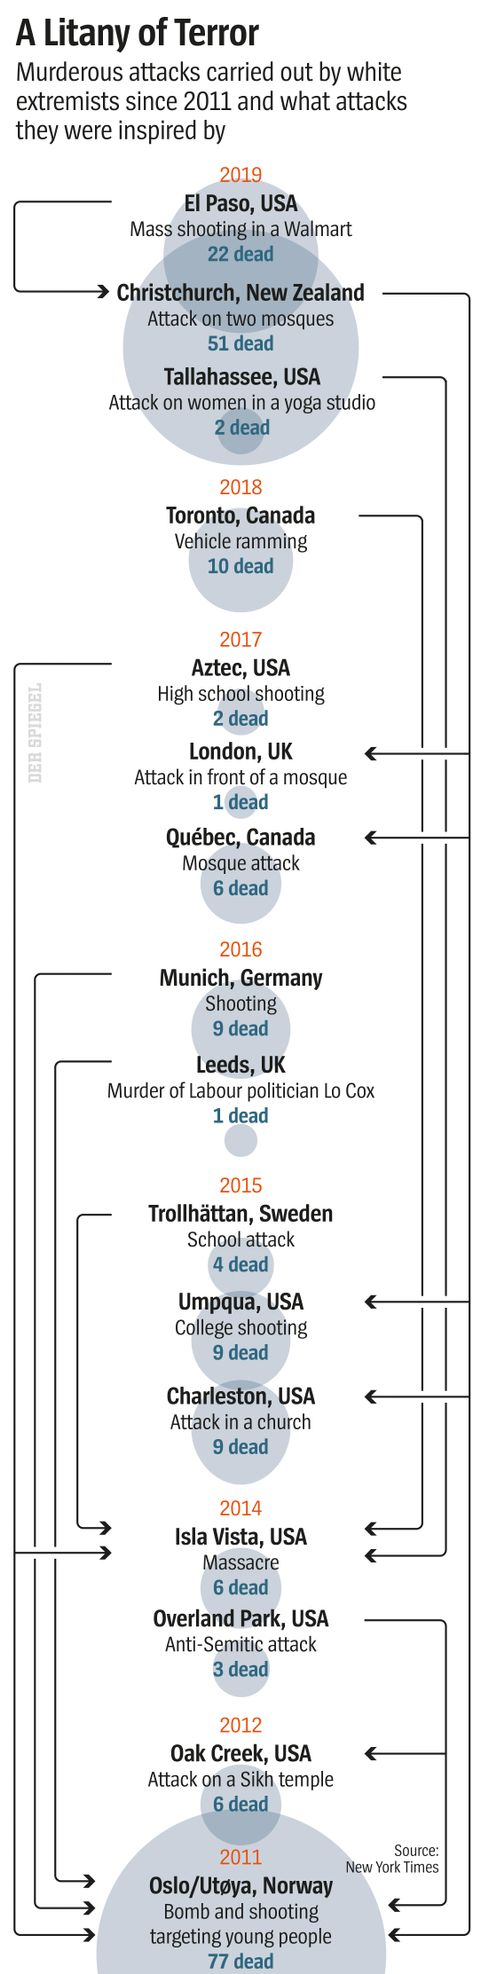 A Litany of Terror: Recent white extremist attacks.